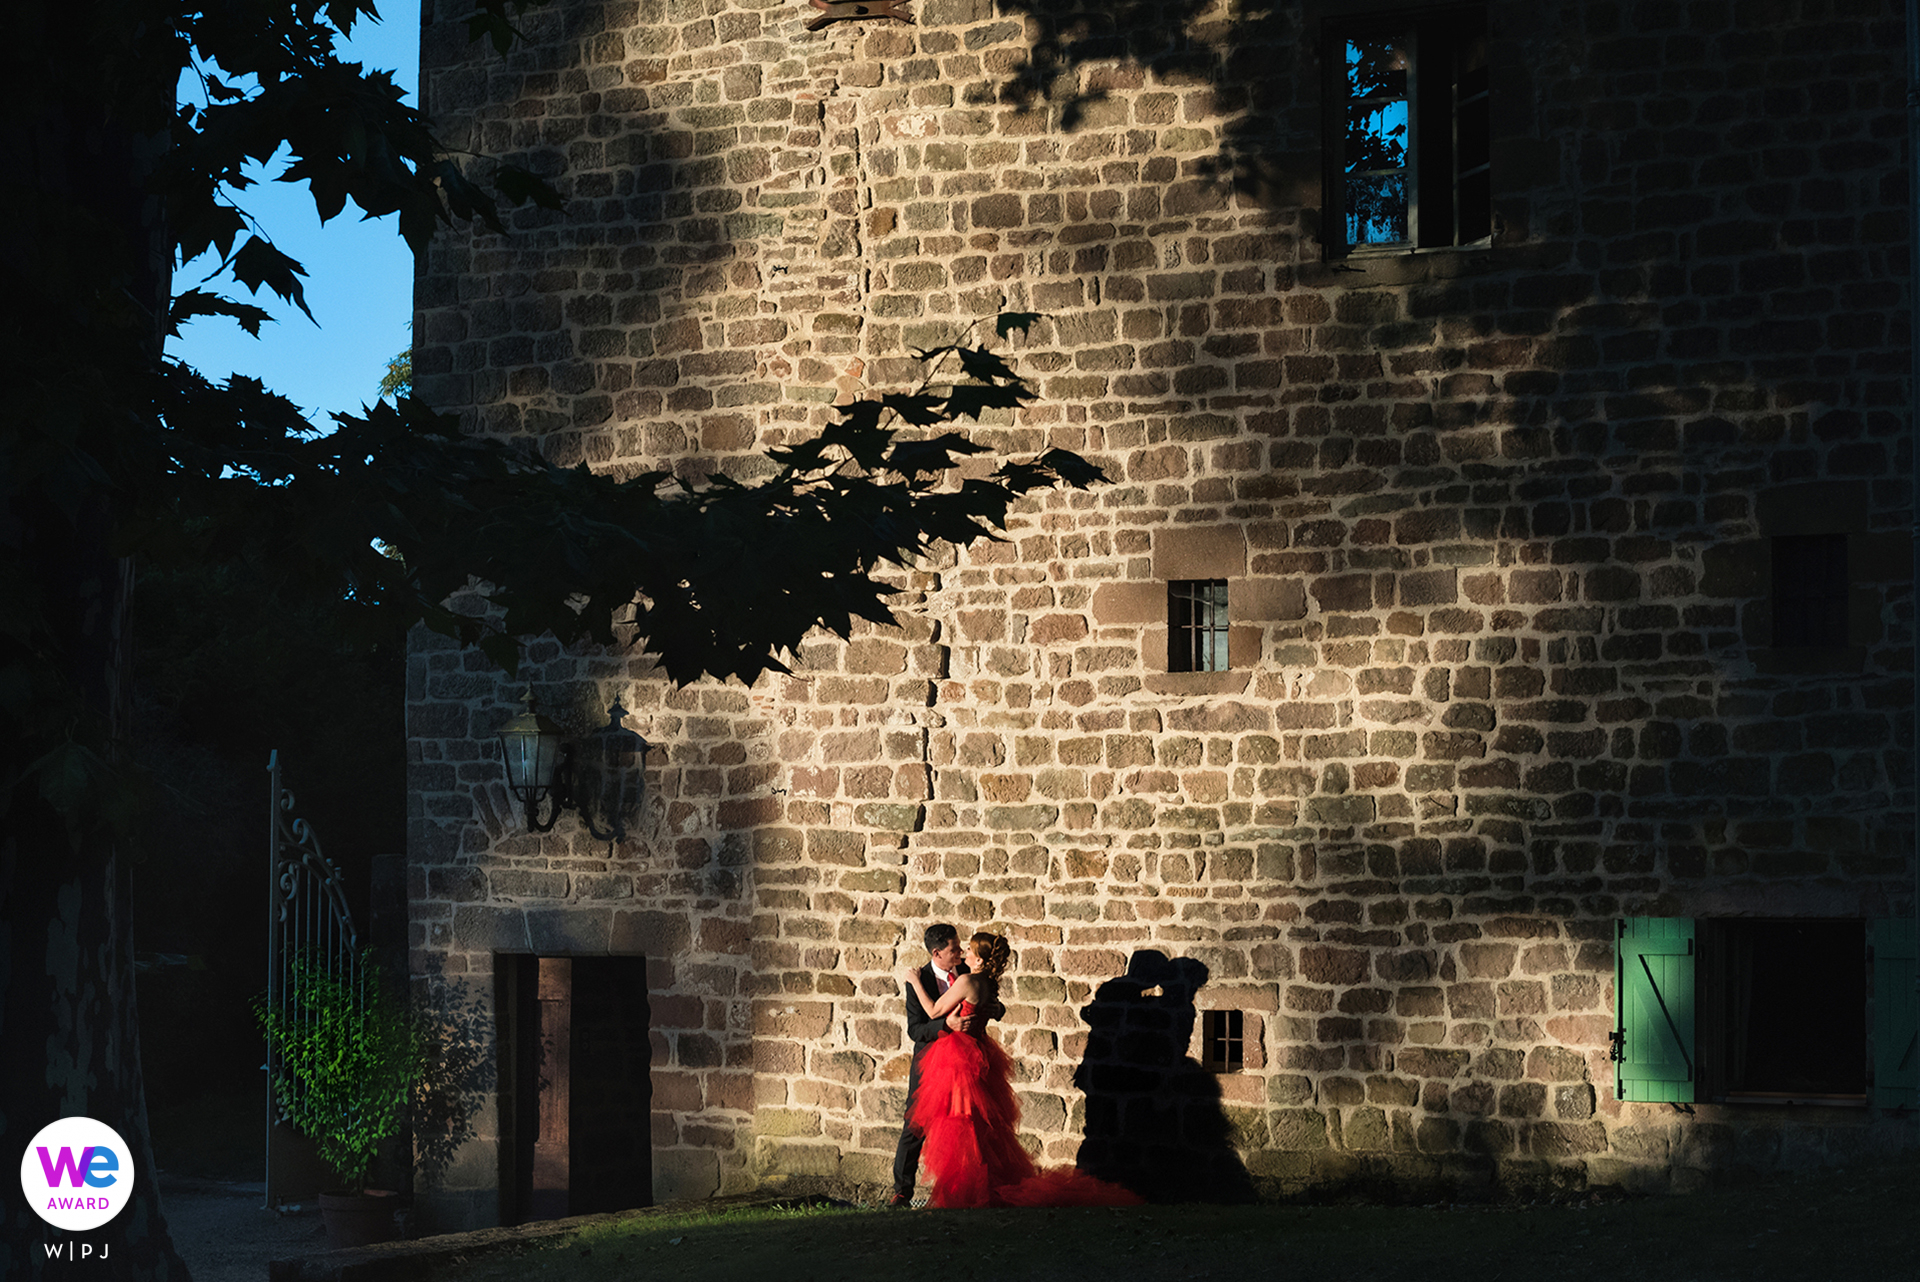 Chateau Labistoul, Cordes-sur-Ciel, France Elopement Photography | The civil ceremony took place in the magnificent city hall of Toulouse